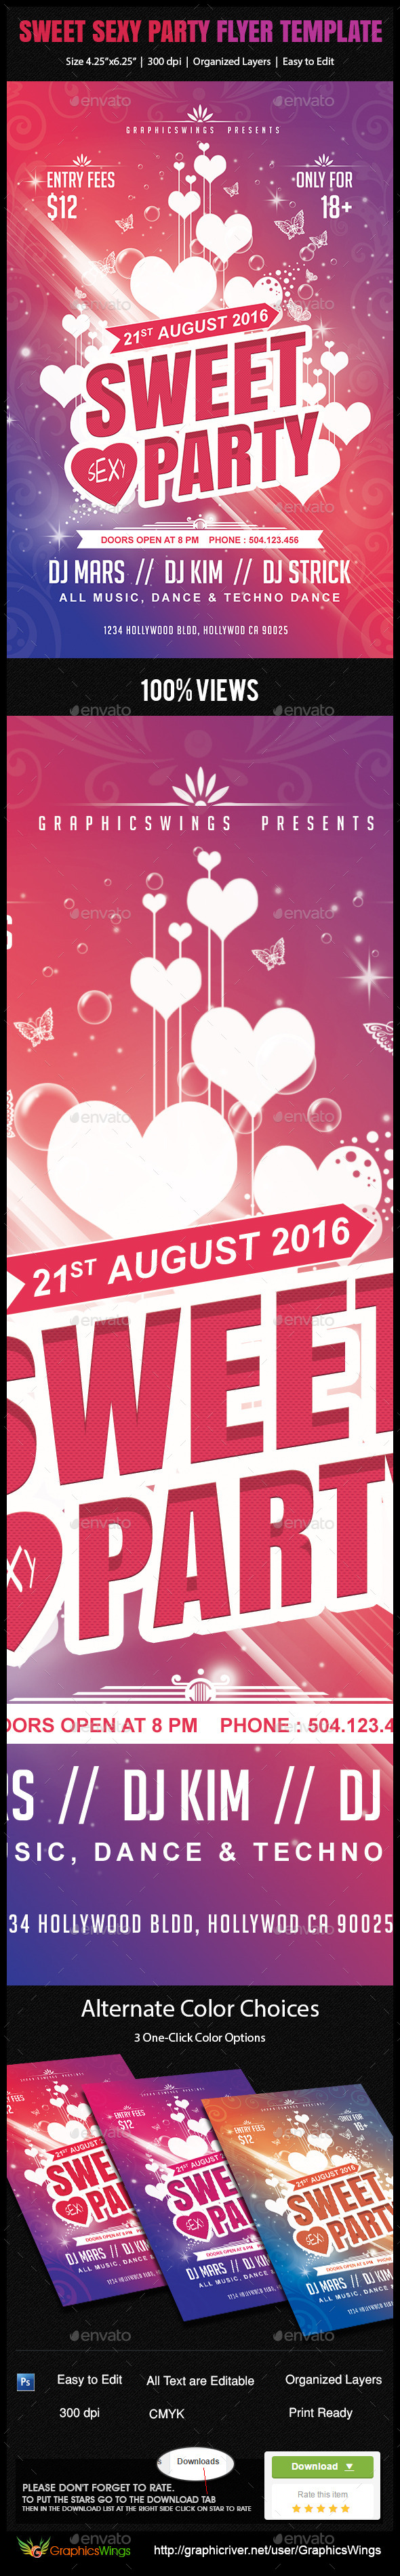 Sweet Sexy Party Flyer Template